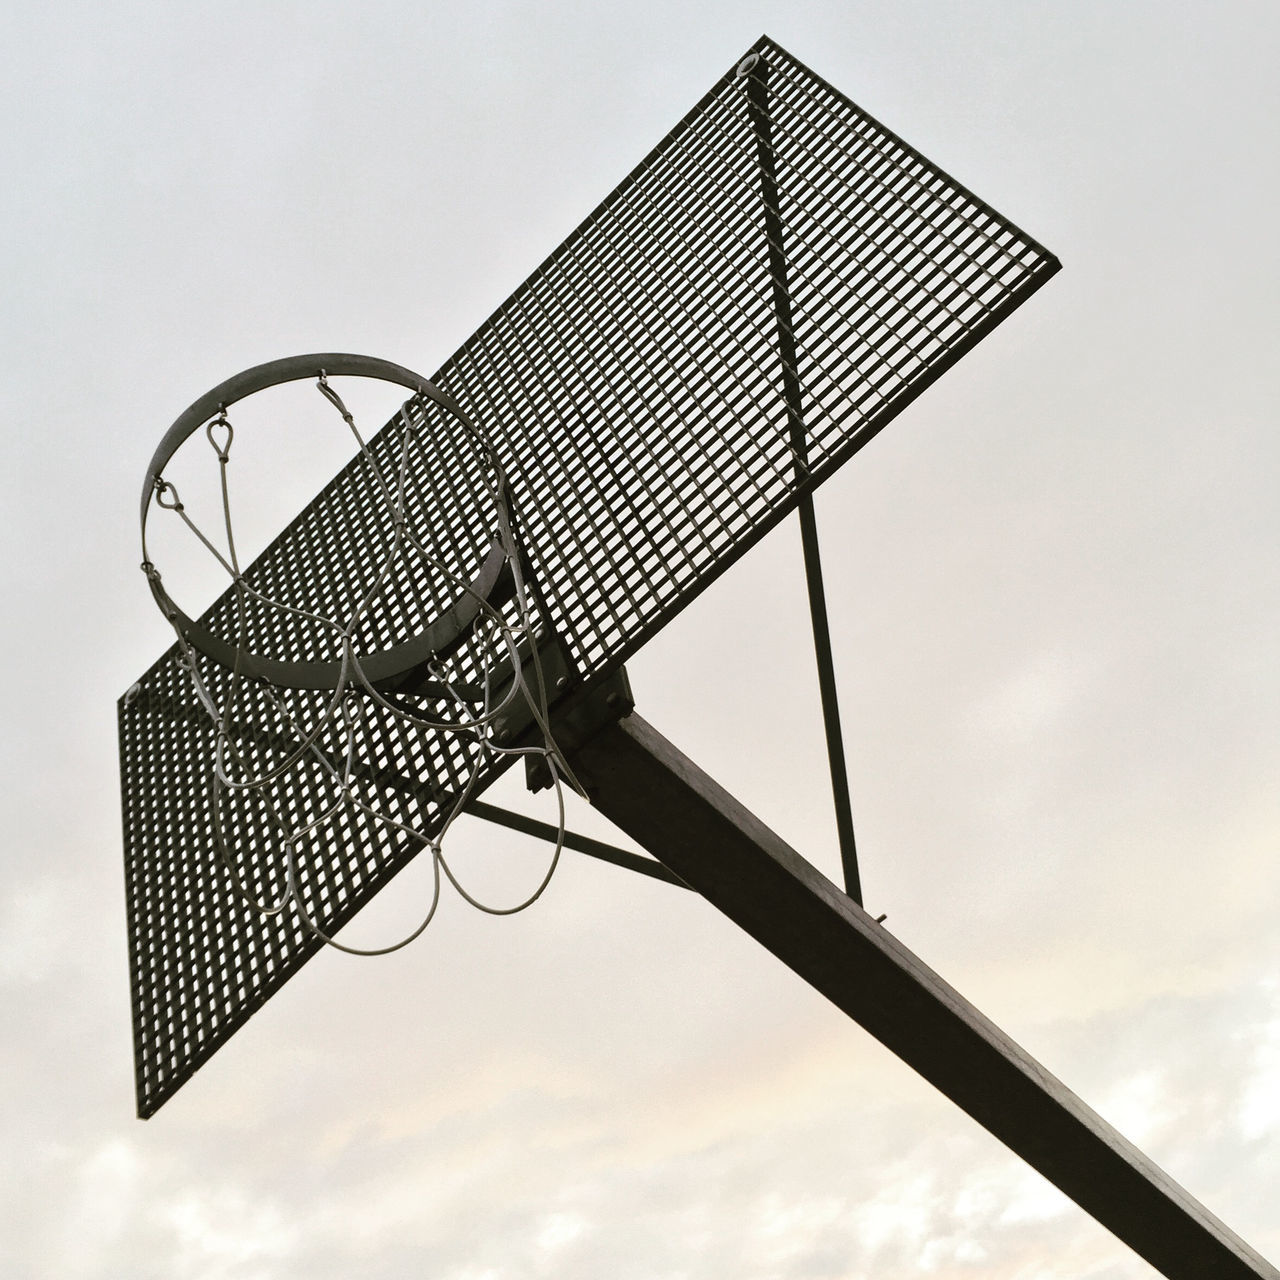 Basket Basketball Basketball Basketball - Sport Basketball Court Basketball Hoop Close-up Court Damaged Day Empty Focus On Foreground Leisure Games Low Angle View Man Made Object Metal Metal Construction Net - Sports Equipment No People Obsolete Outdoors Sky Spool Sport Sports